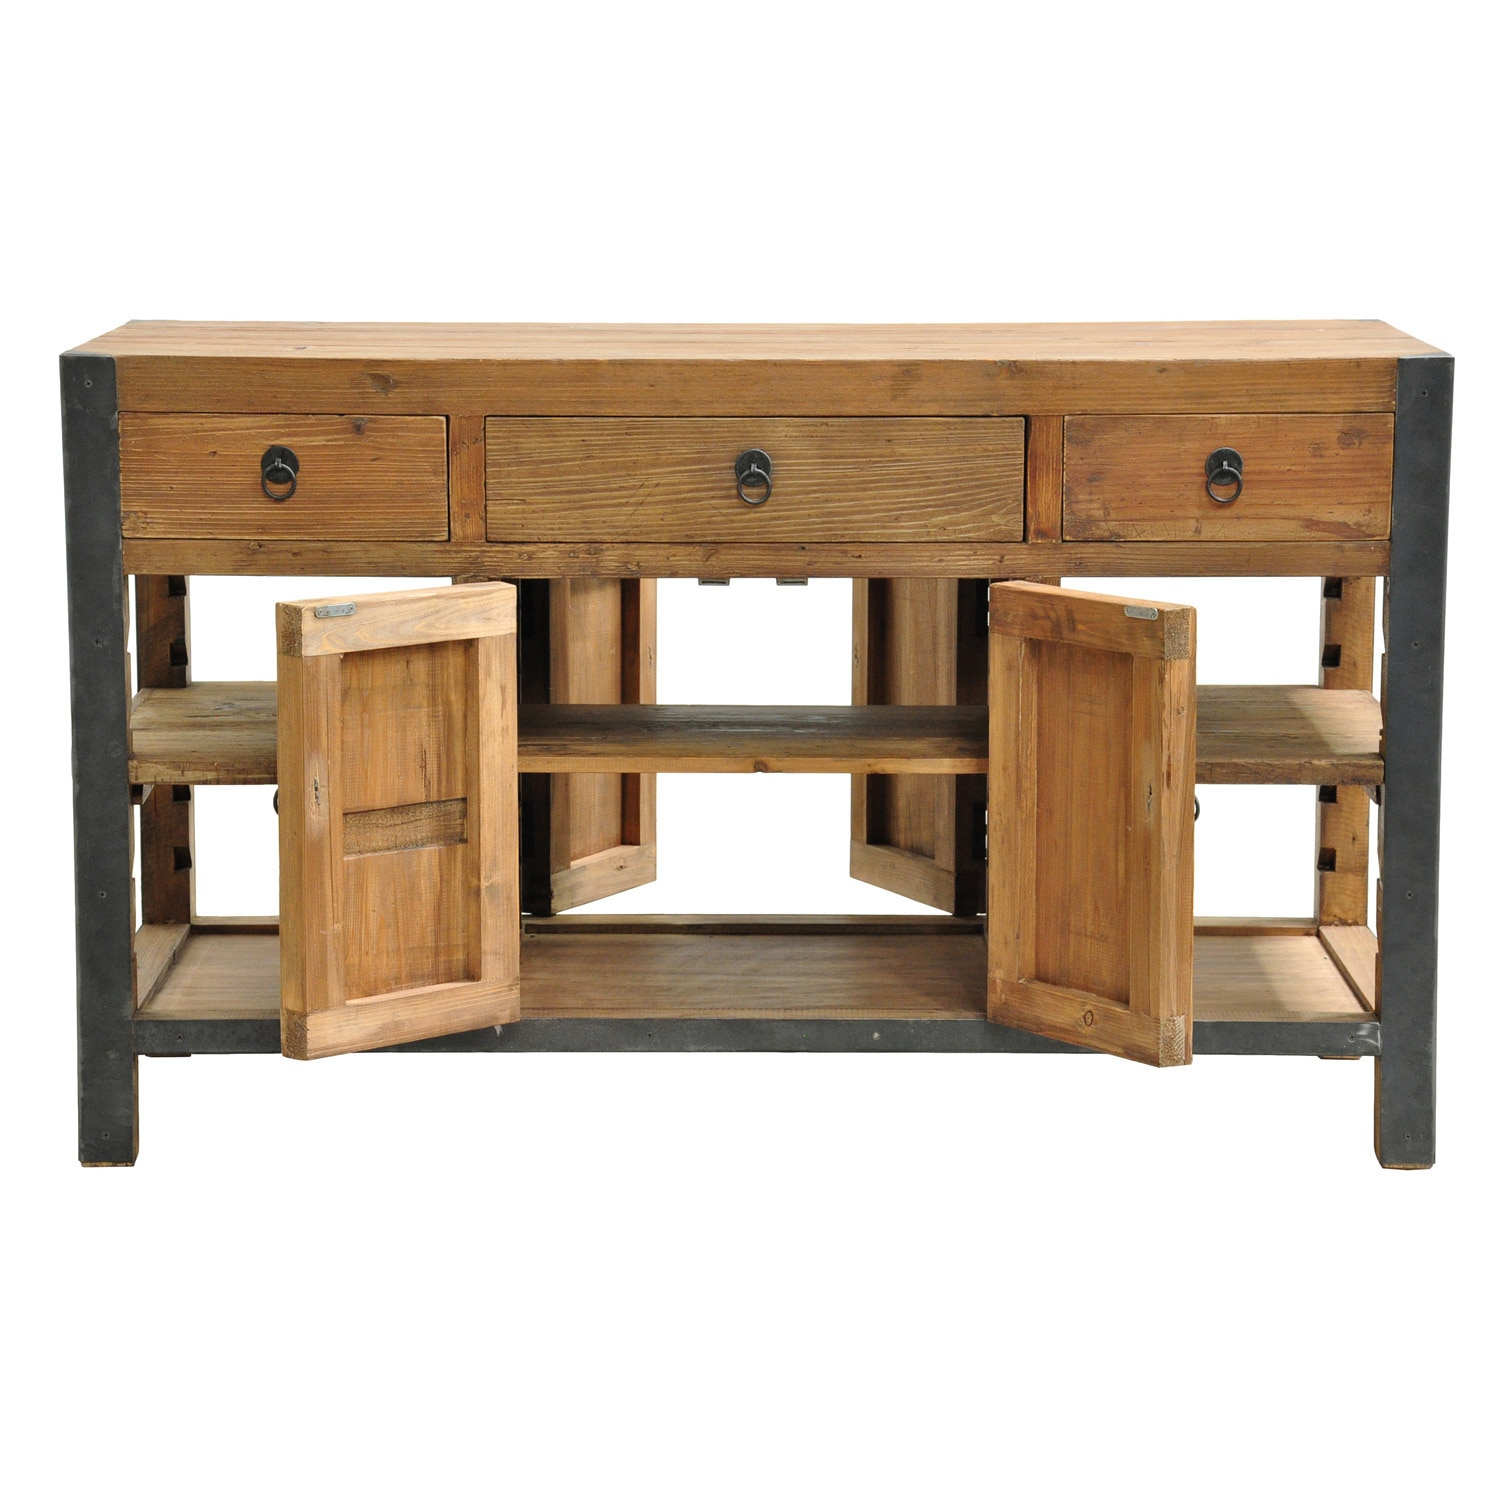 Shop Pine Canopy Pike Reclaimed Wood And Iron 60 Inch Kitchen Island   On  Sale   Free Shipping Today   Overstock.com   20253947